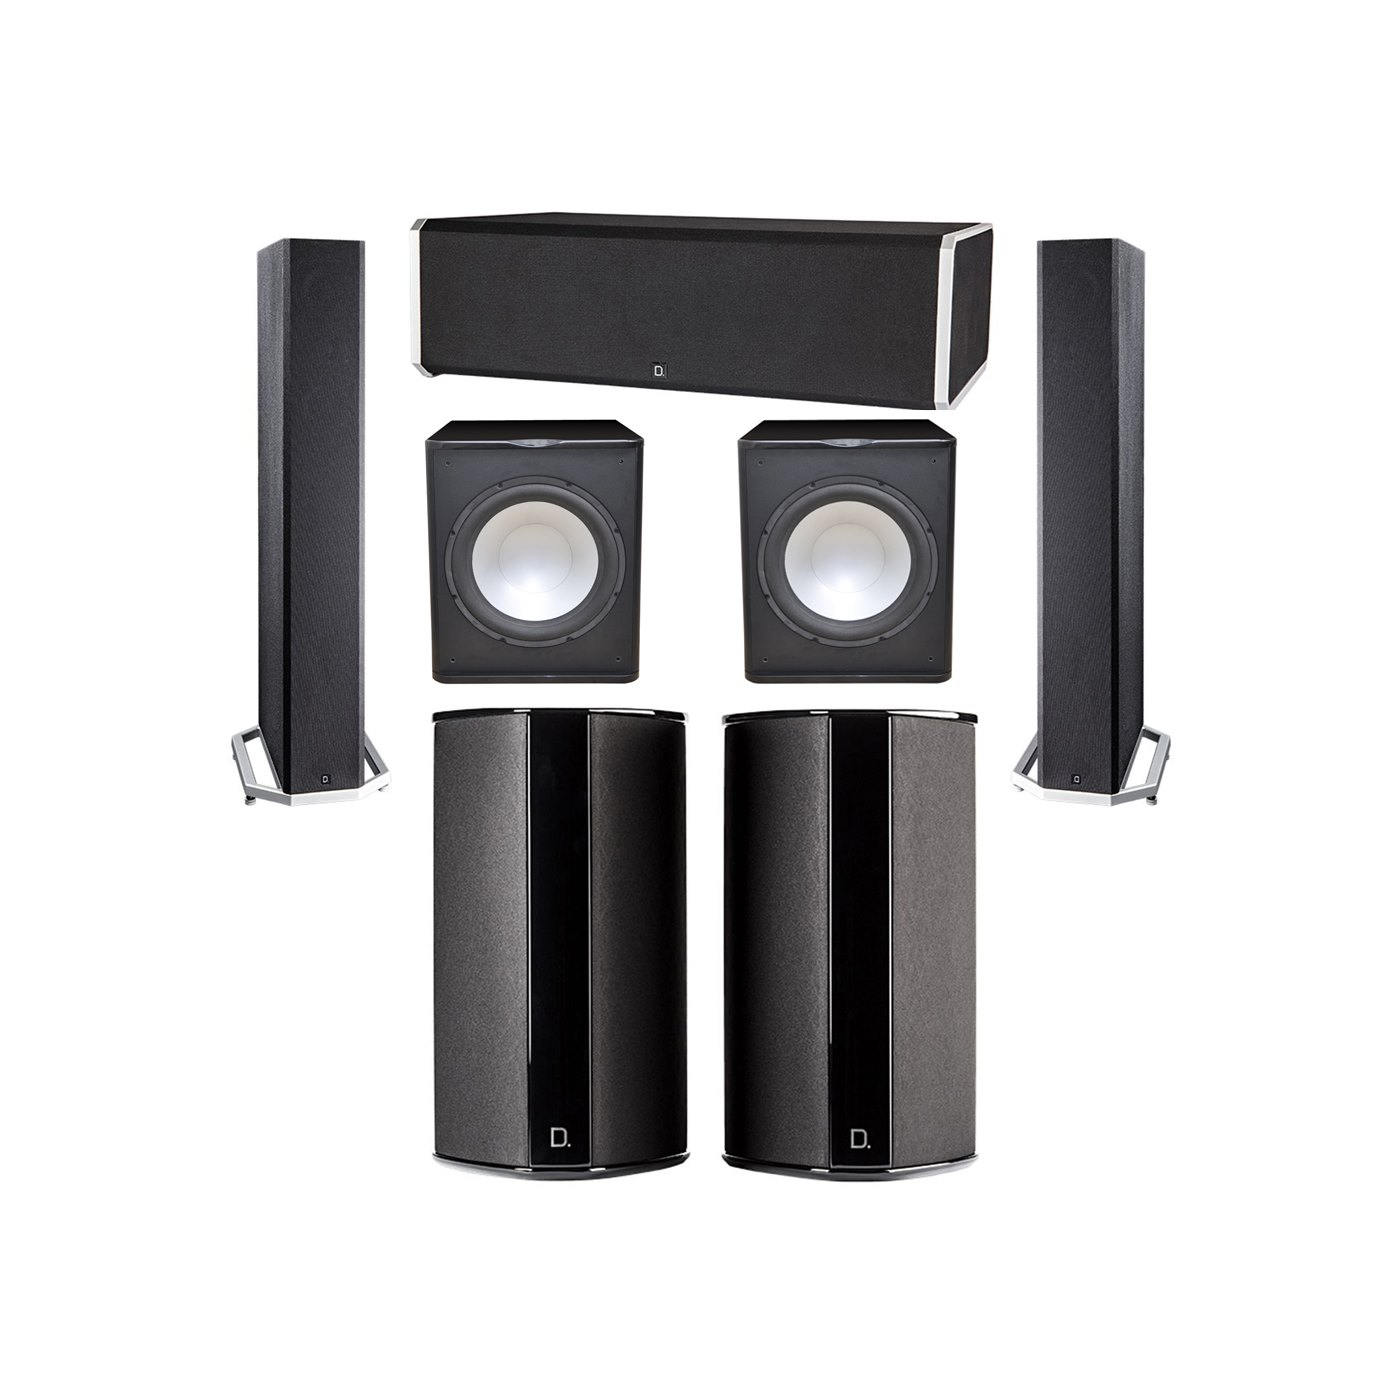 Definitive Technology 5.2 System with 2 BP9040 Tower Speakers, 1 CS9080 Center Channel Speaker, 2 SR9080 Surround Speaker, 2 Premier Acoustic PA-150 Subwoofer